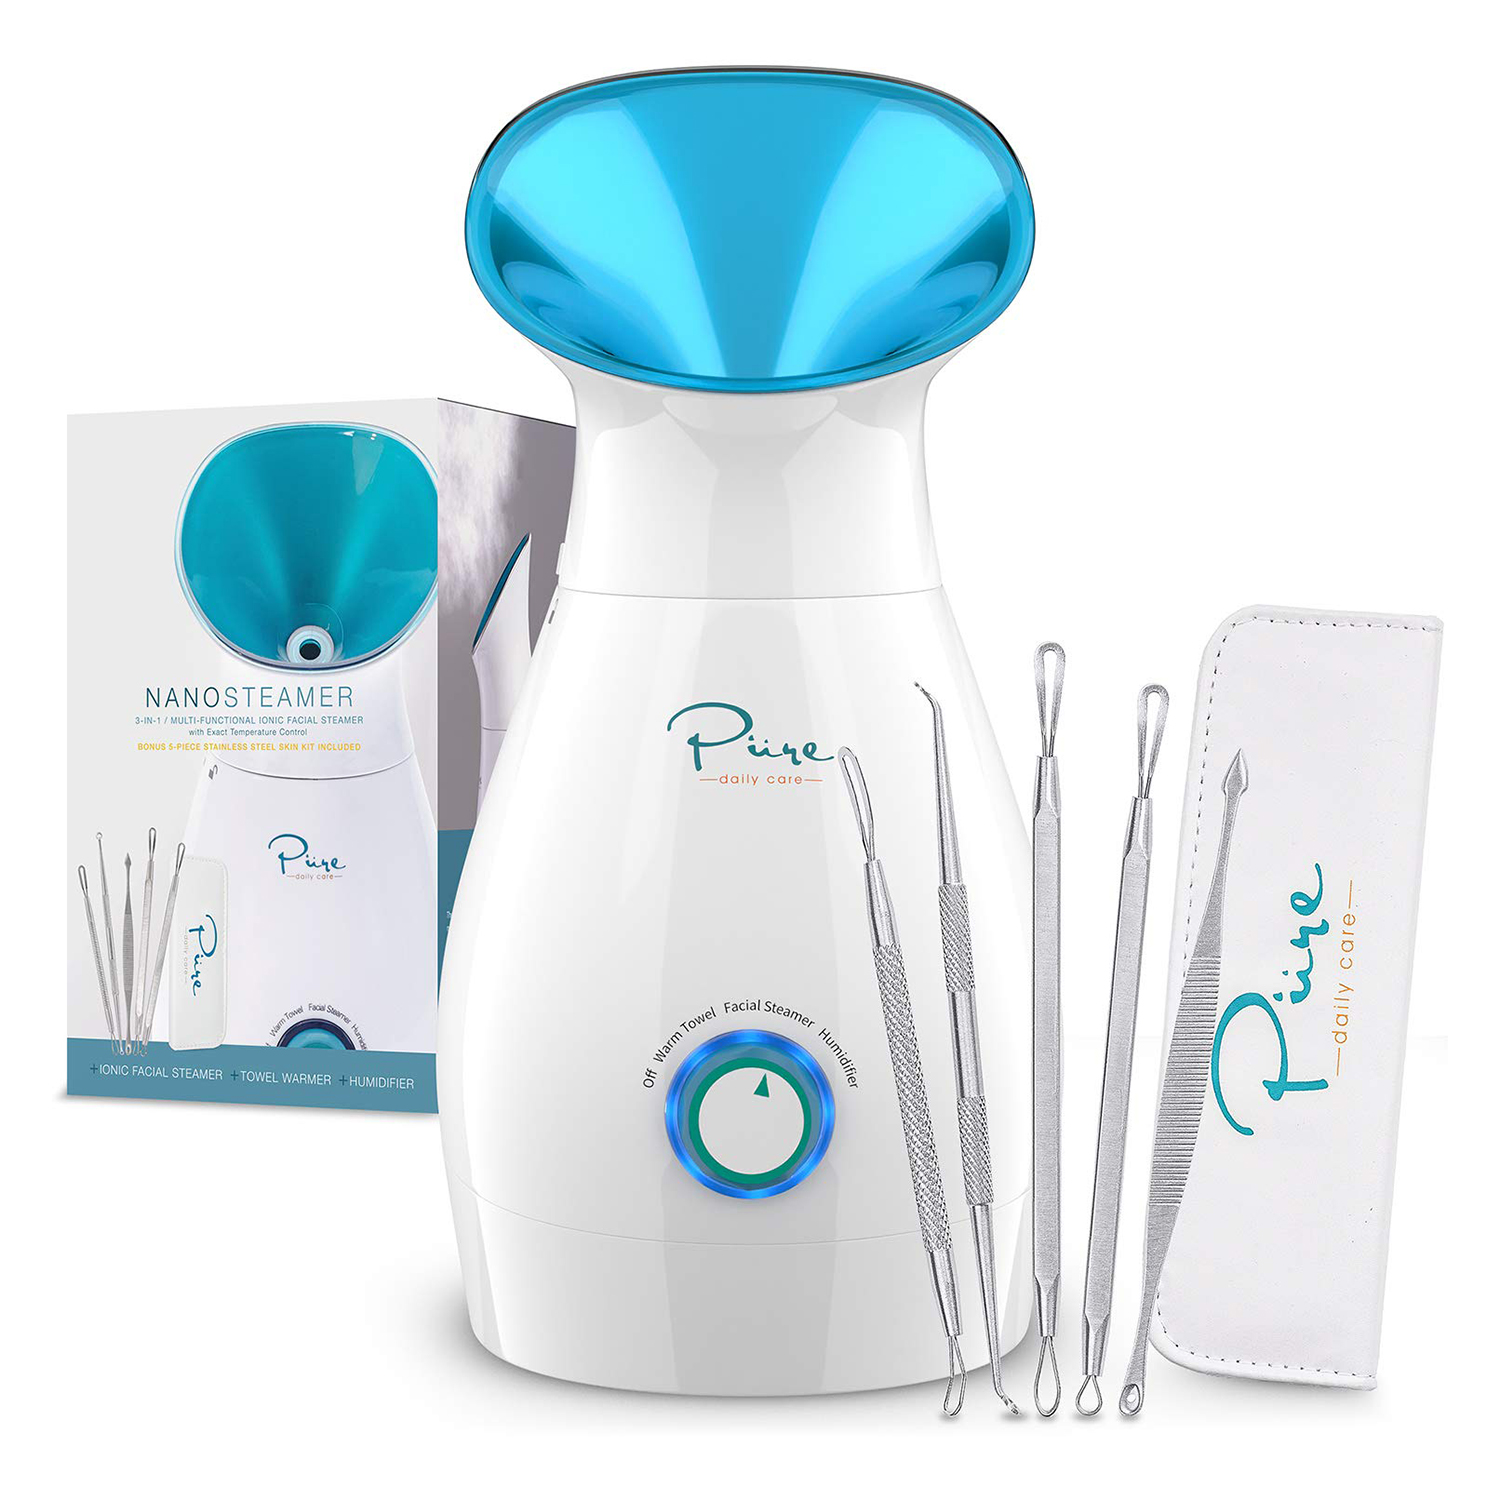 NanoSteamer Large 3-in-1 Nano Ionic Facial Steamer with Precise Temp